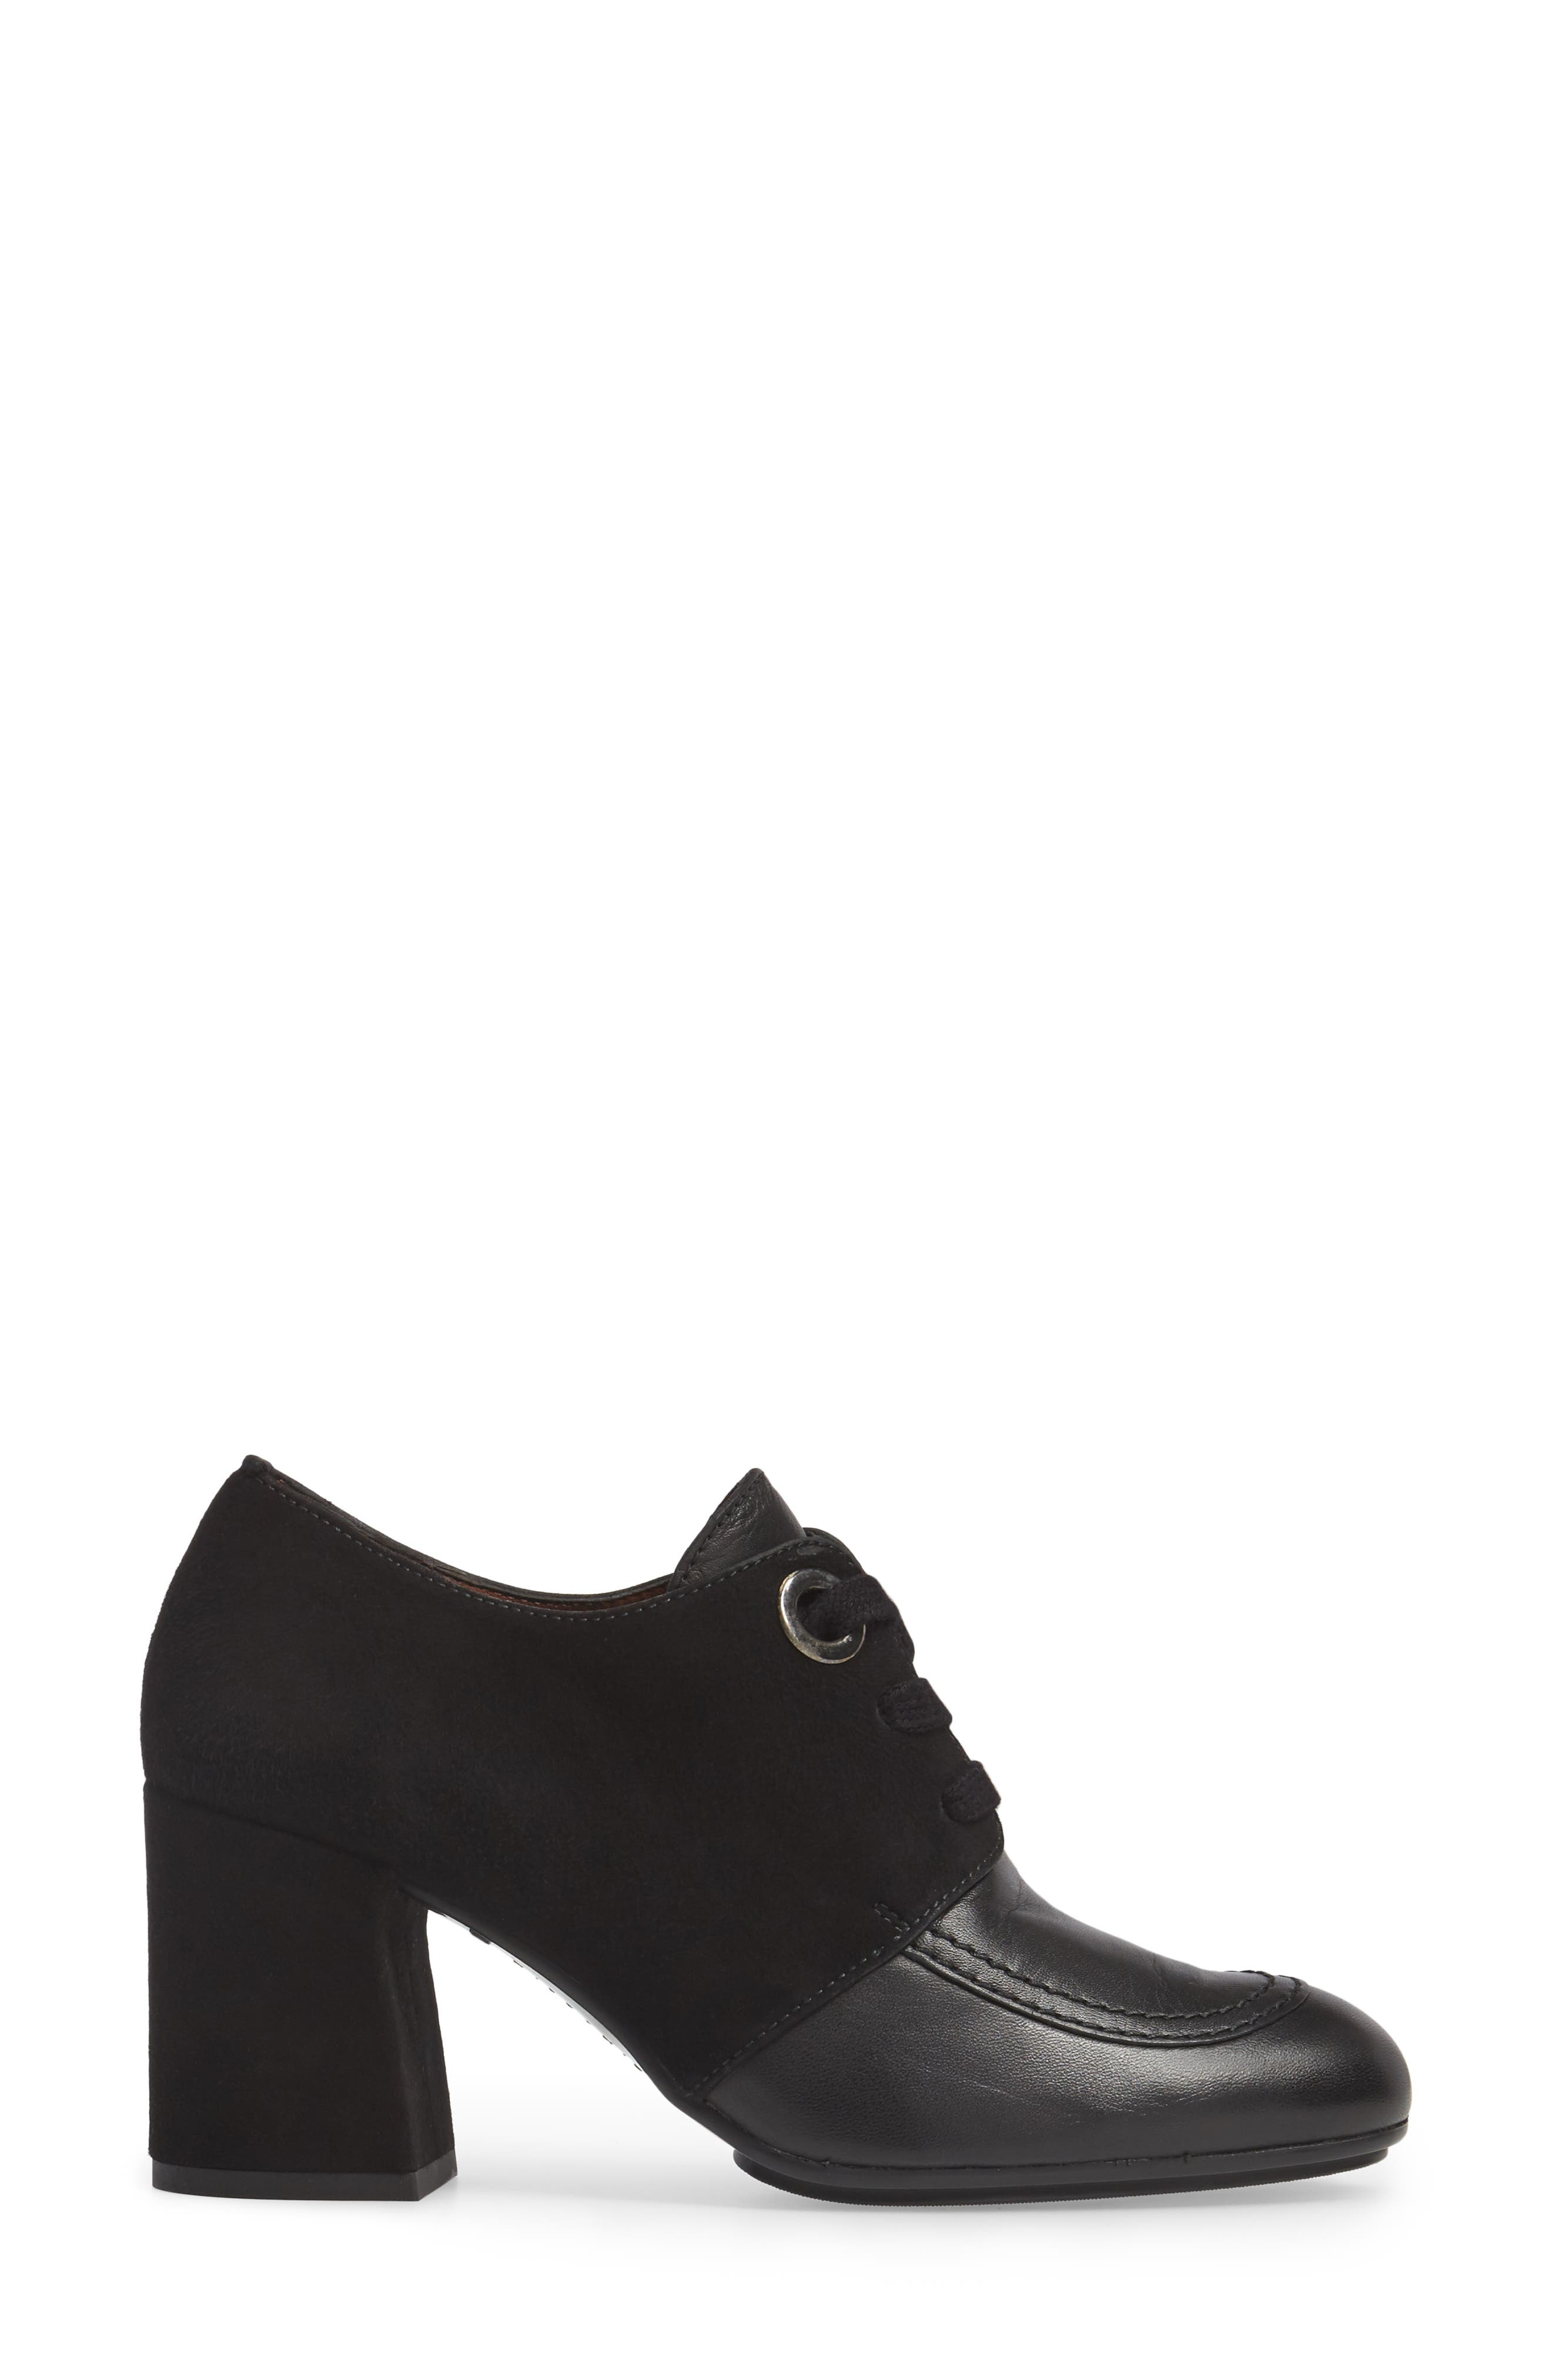 Glenna Oxford Pump,                             Alternate thumbnail 3, color,                             001